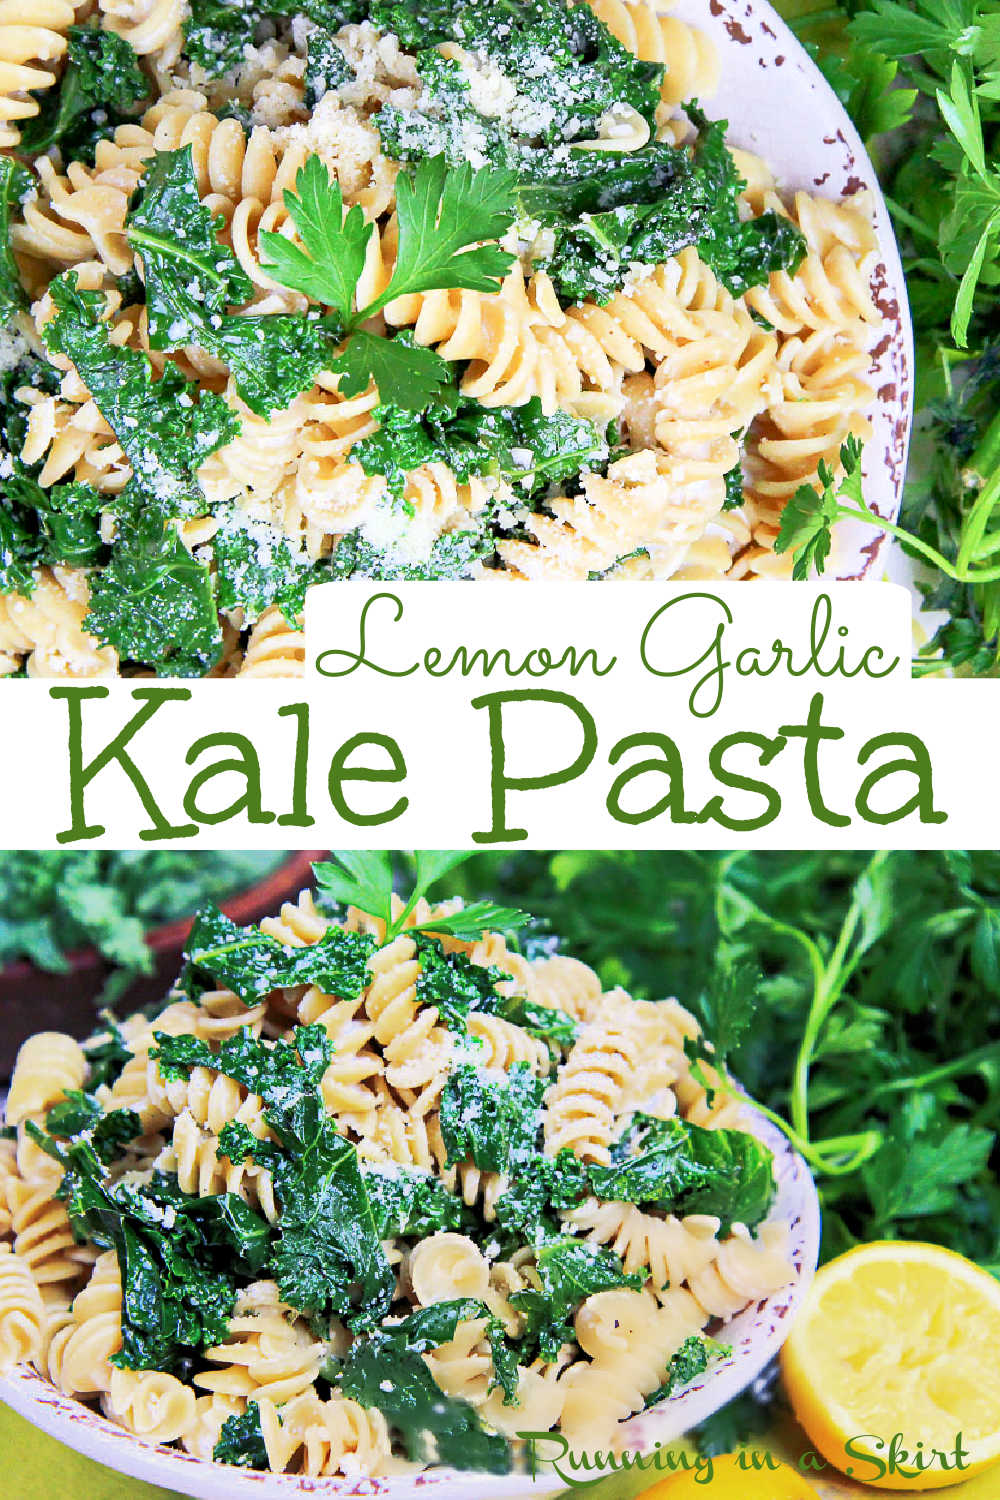 Kale Pasta Recipe with a light greek yogurt, parmesan, lemon and garlic sauce. Looking for healthy vegetarian pasta recipes this is it? The perfect combo of comfort and health foods that's easy, simple homemade and delicious. You'll love this pasta with kale! Perfect for meatless Monday! Includes a vegan option. Can use gluten free pasta. Clean Eating. / Running in a Skirt #kale #pasta #vegetarian #comfortfoods #healthy via @juliewunder